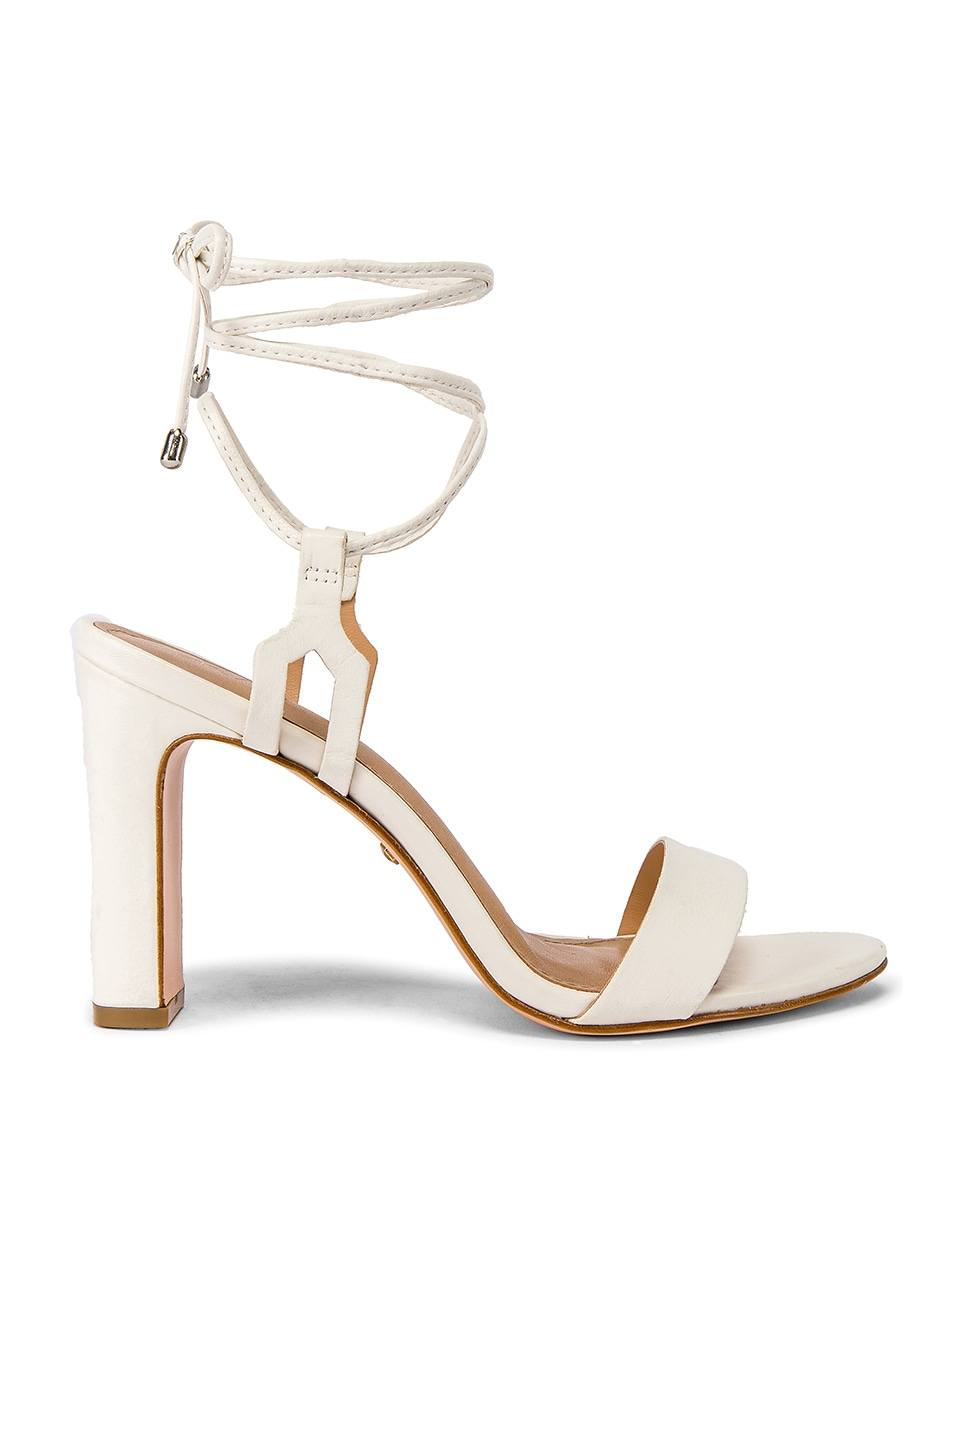 RAYE Kendall Heel in Bone